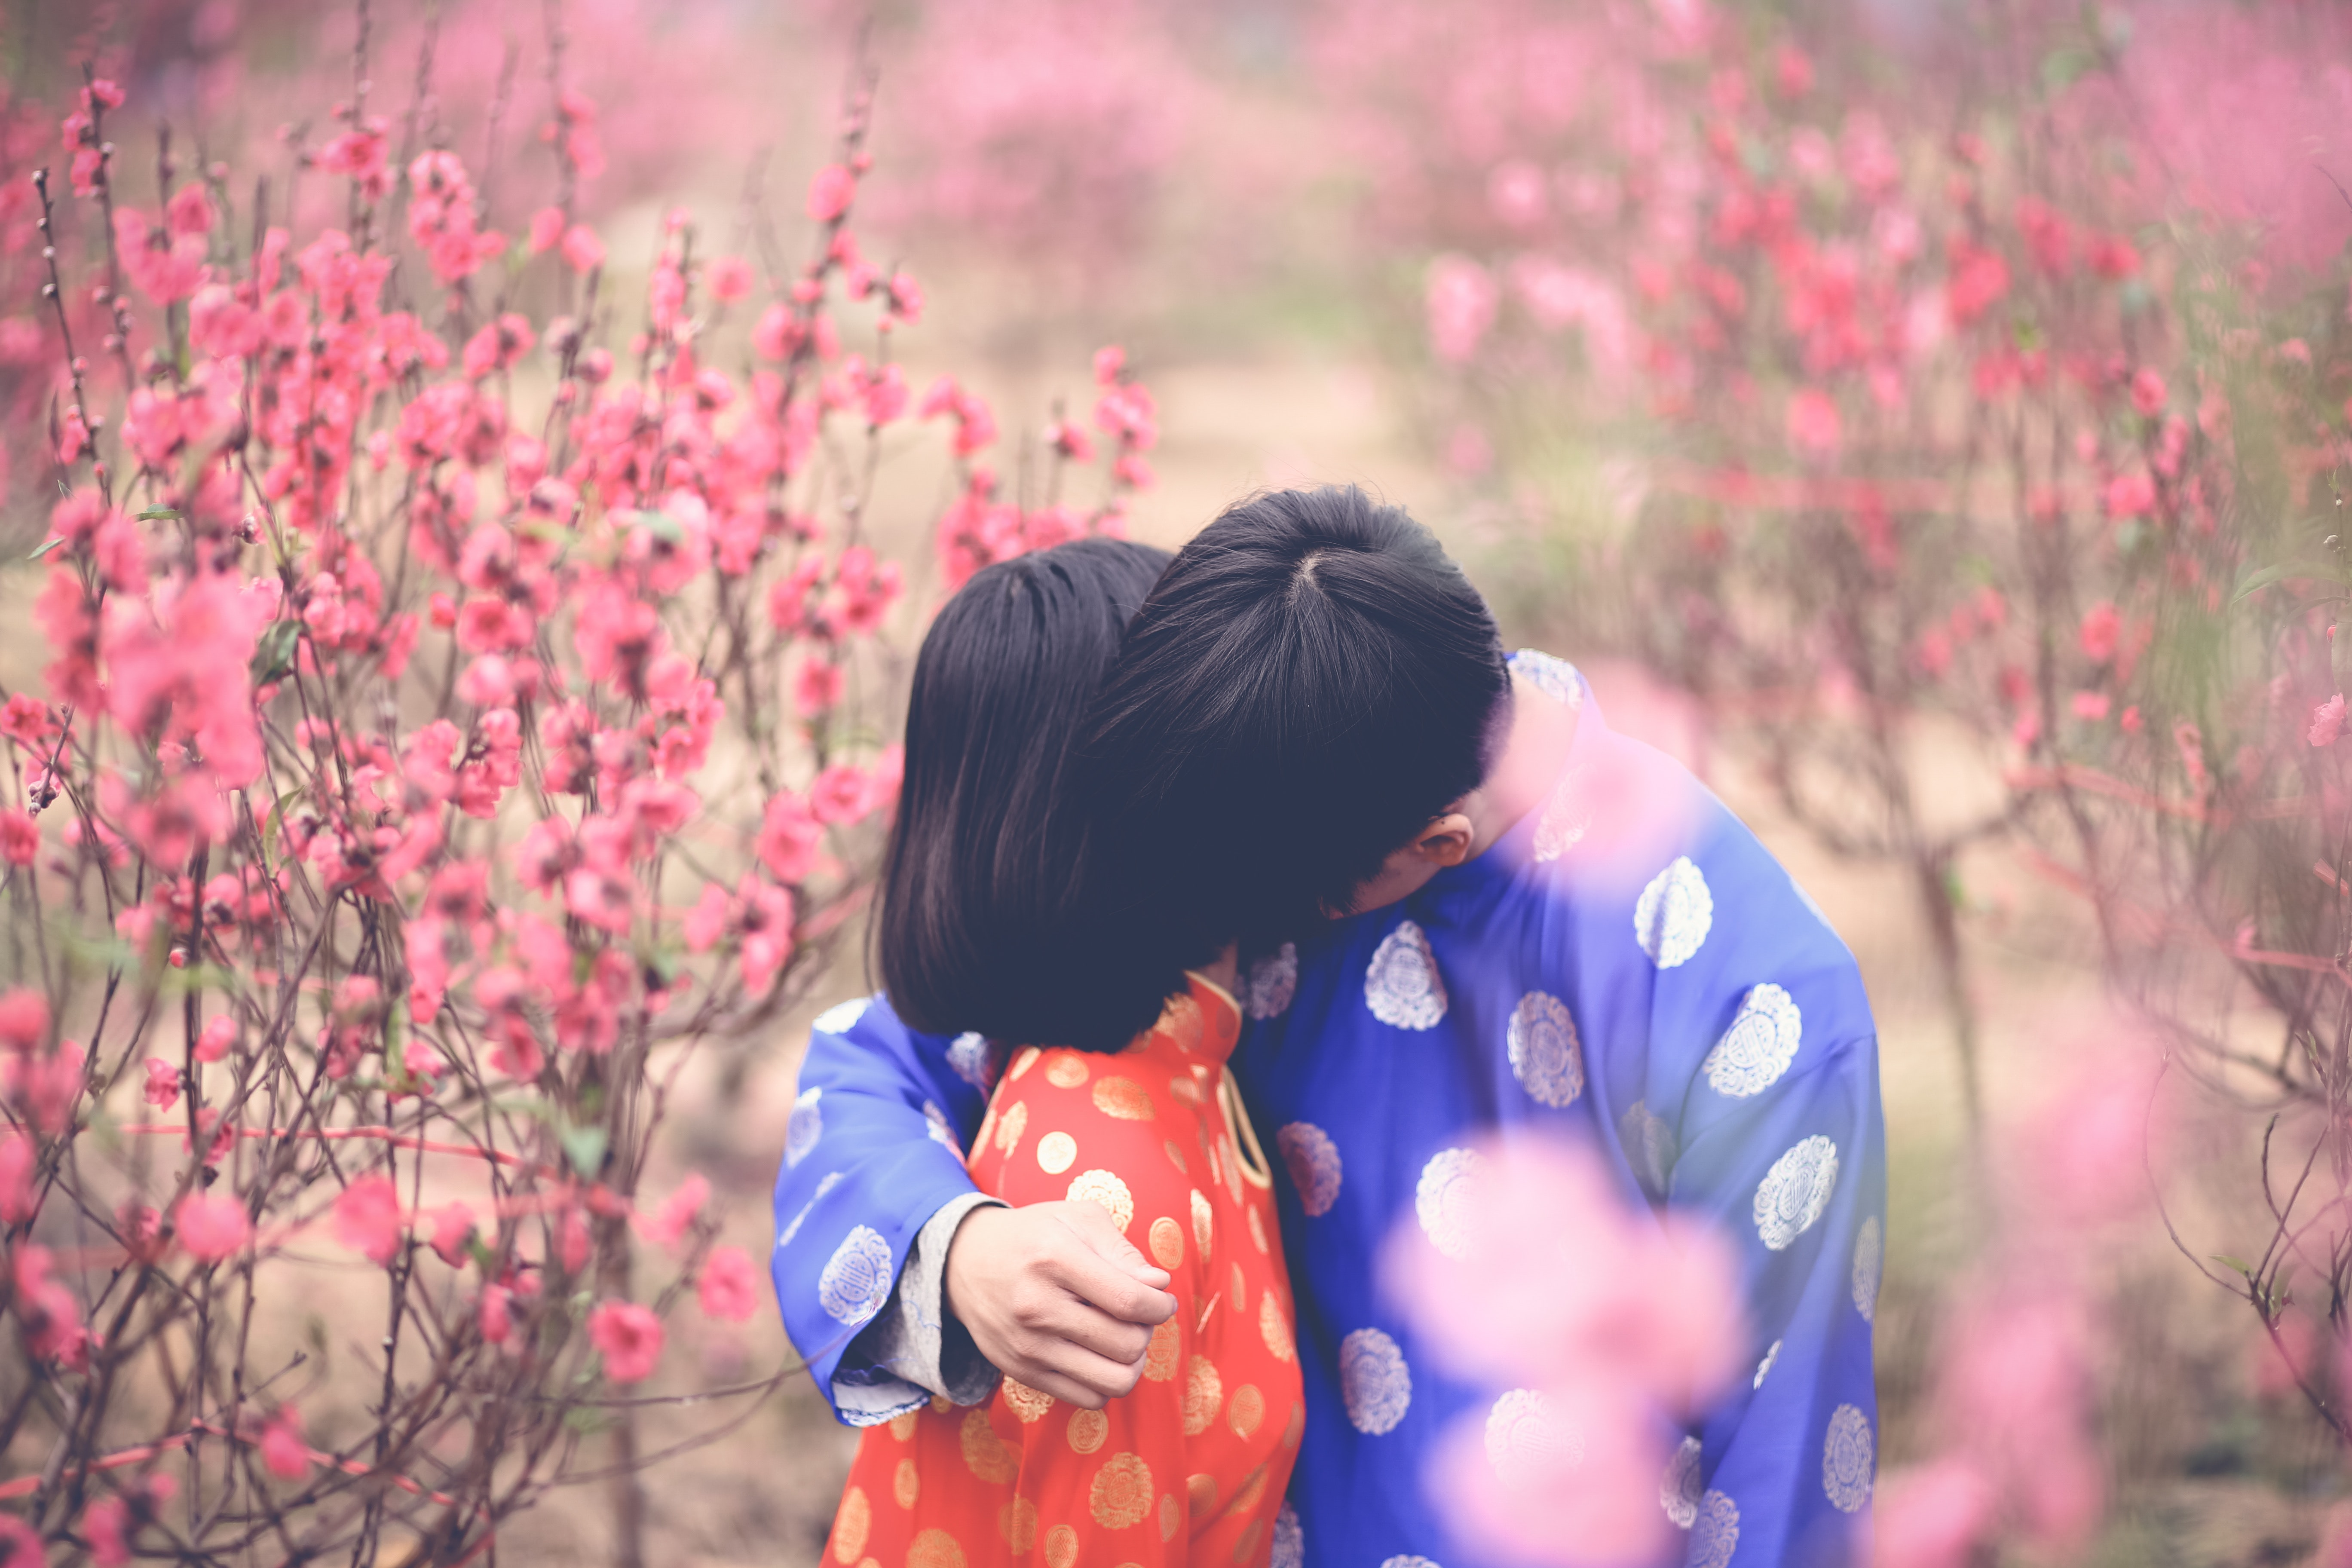 Man hugging girl in orange clothes photo